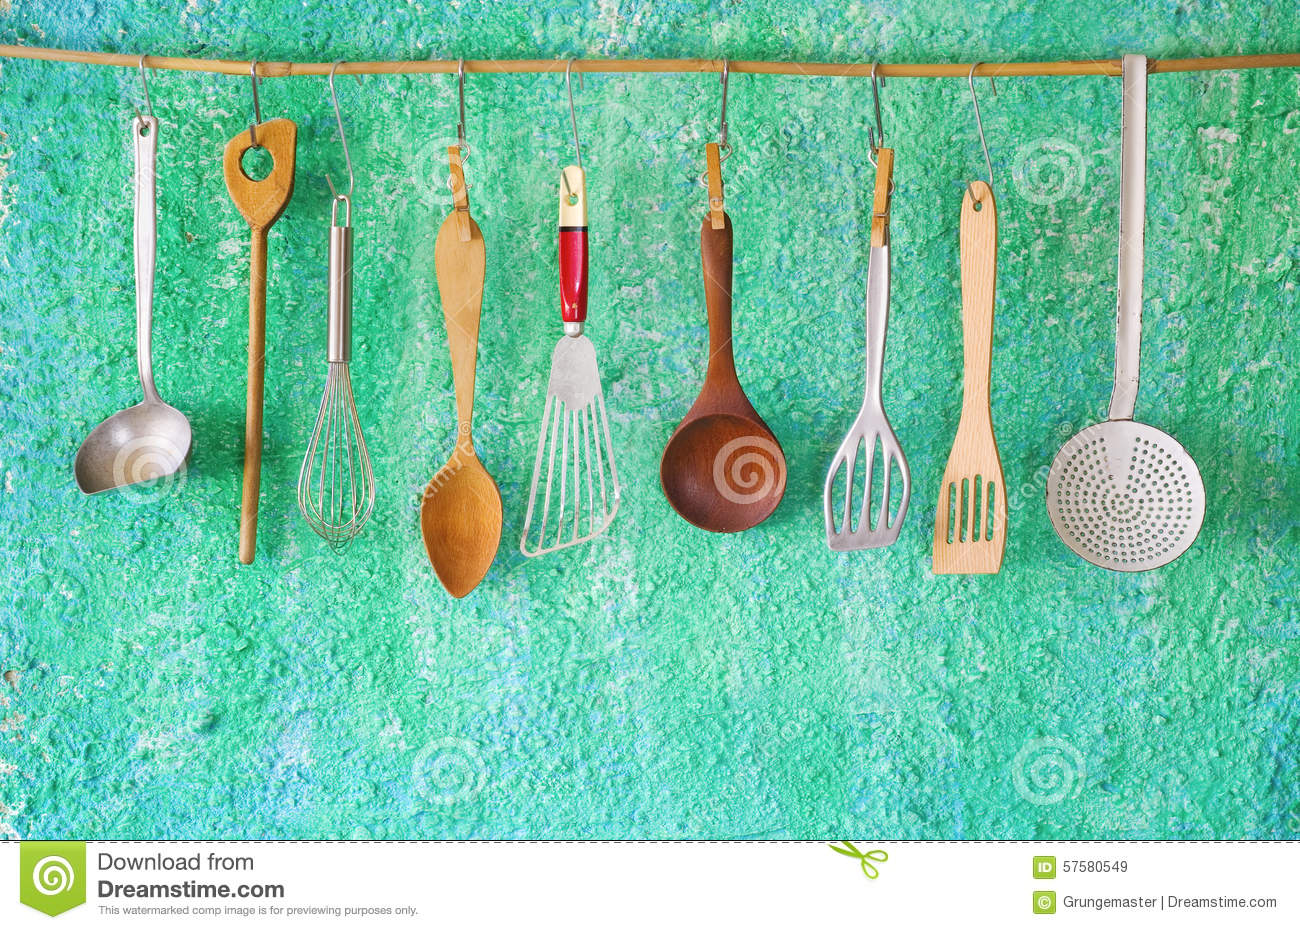 Hanging Vintage Kitchen Utensils Stock Image - Image of ladle, group ...